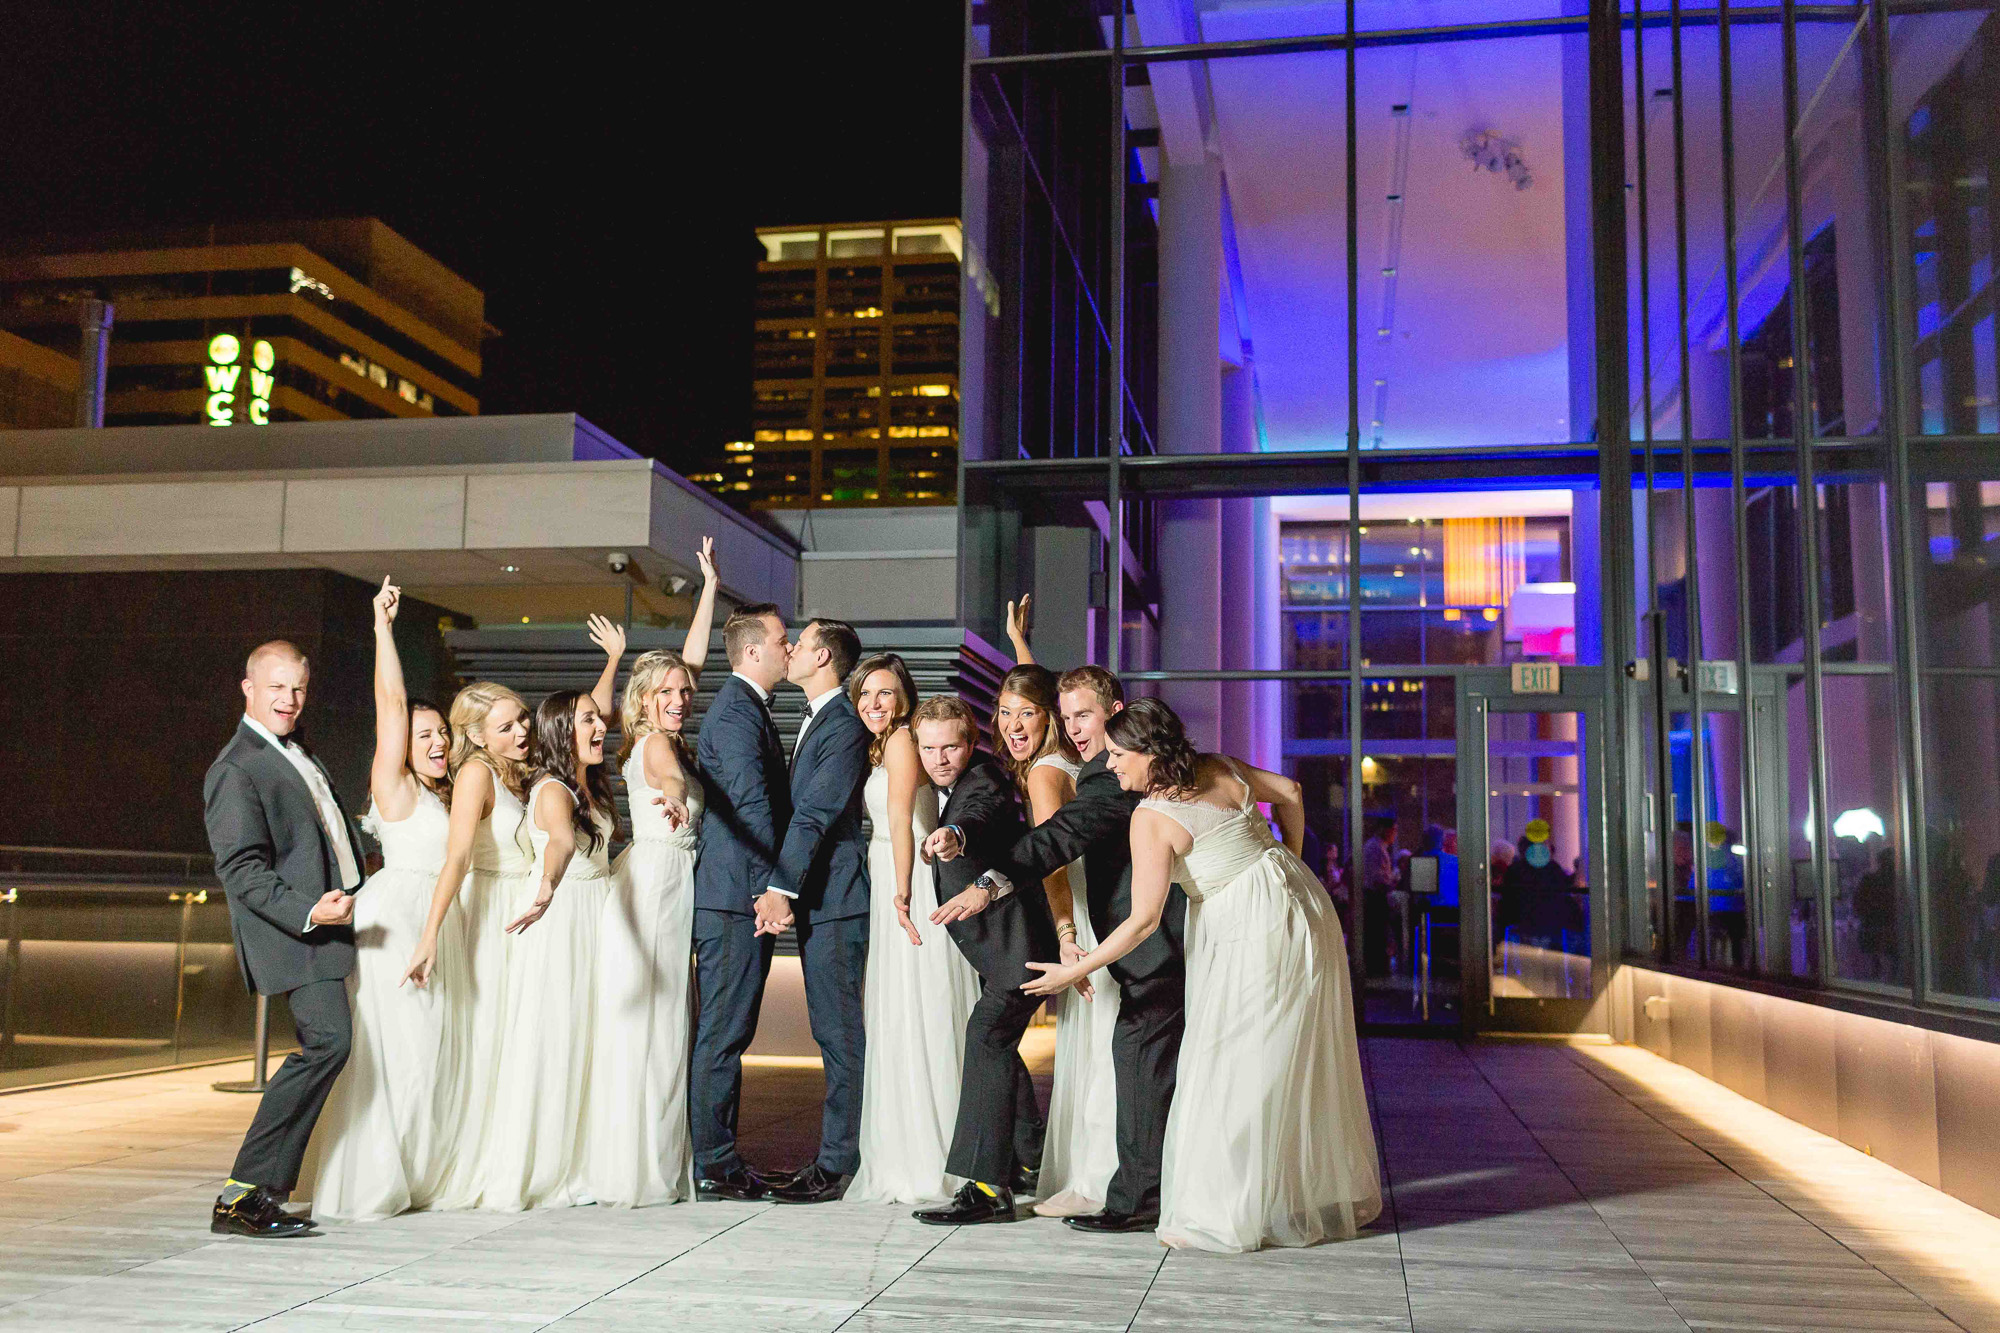 Planning Your Wedding Party - Wedding Planning Tips by San Diego Wedding Photographers